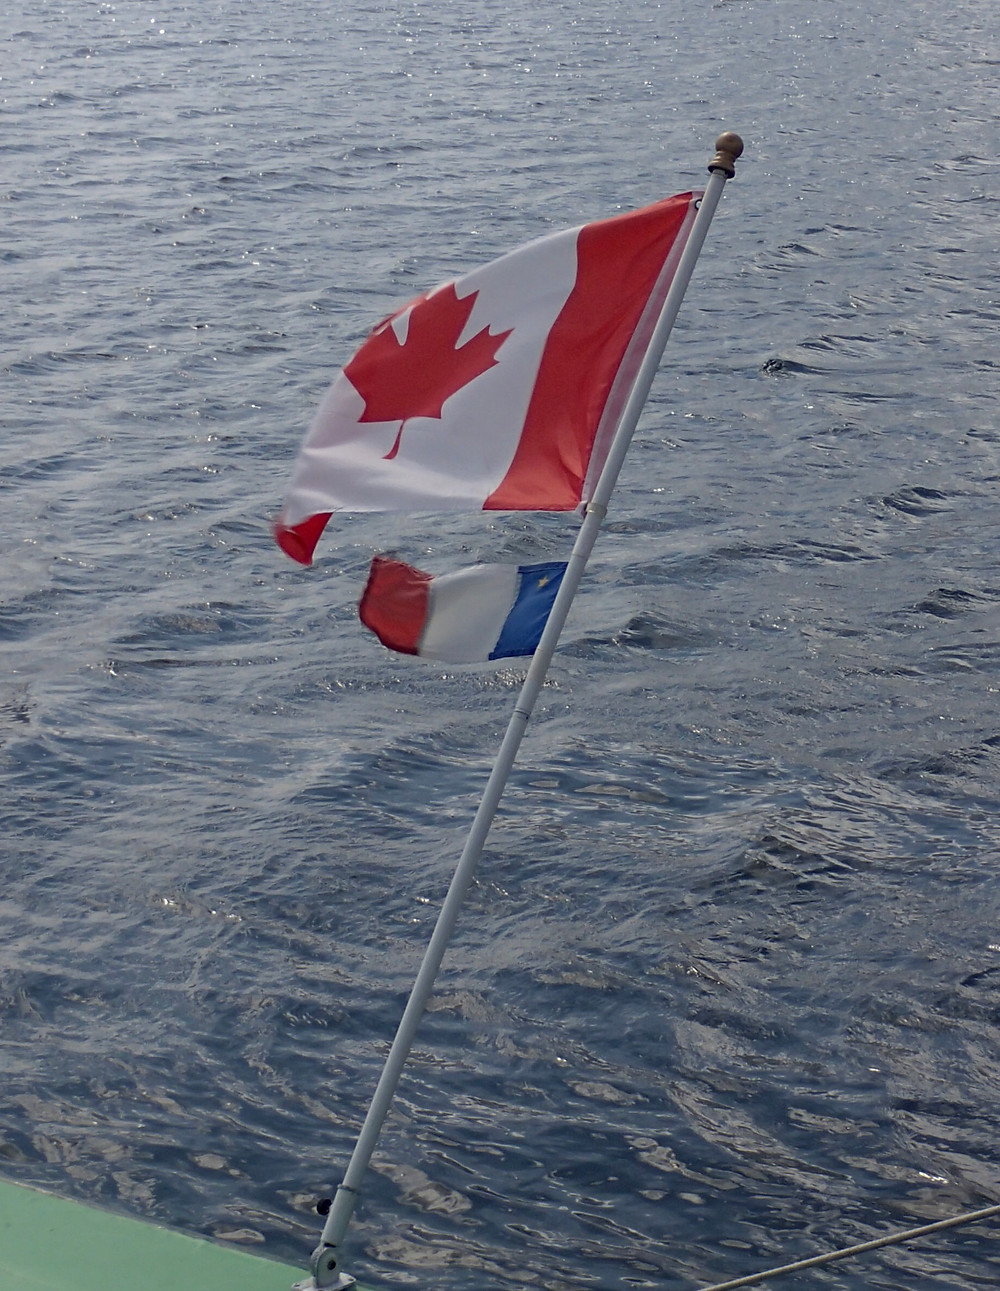 Acadian and Canadian flags on a boat